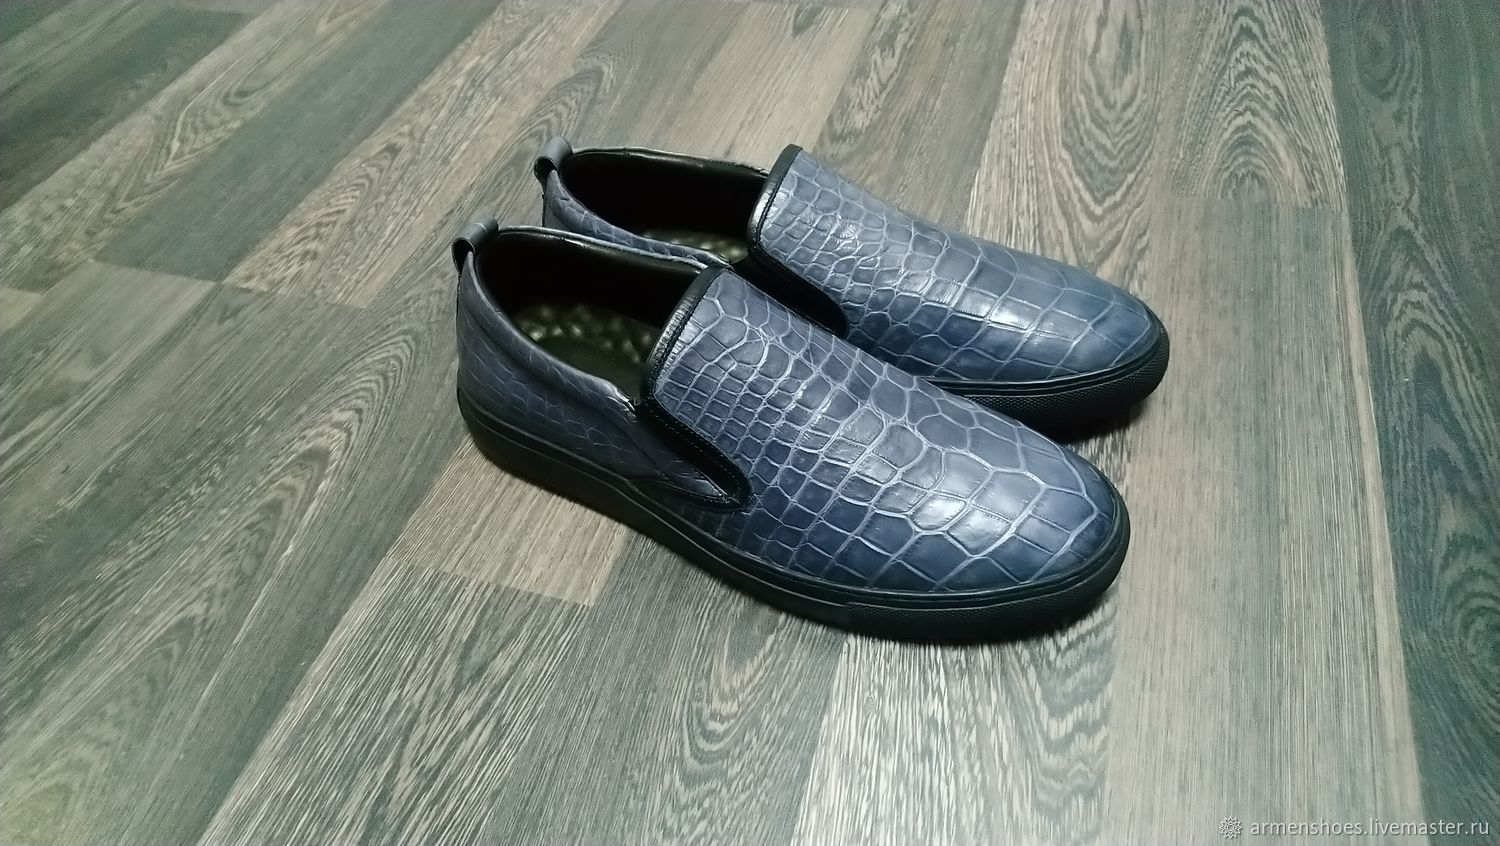 Slip-ons made of genuine crocodile leather, on request!, Slip-ons, Tosno,  Фото №1